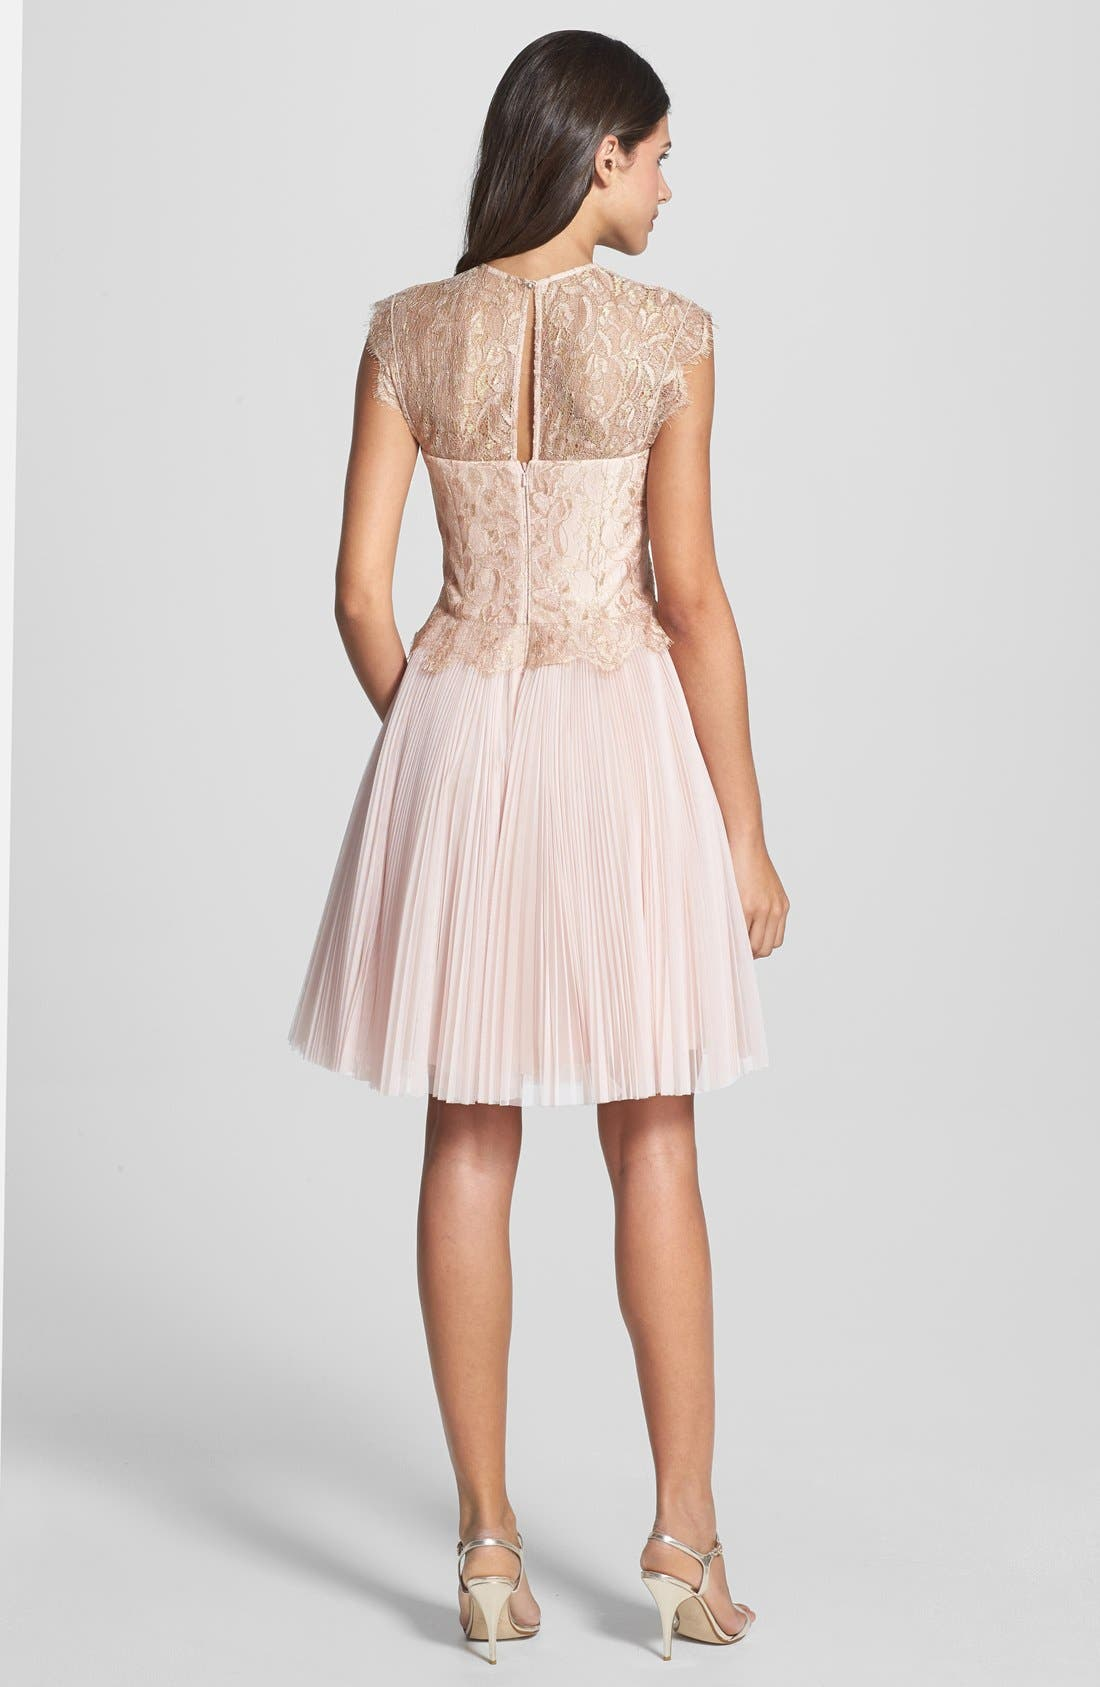 'Remma' Metallic Lace Overlay Fit & Flare Dress,                             Alternate thumbnail 4, color,                             672